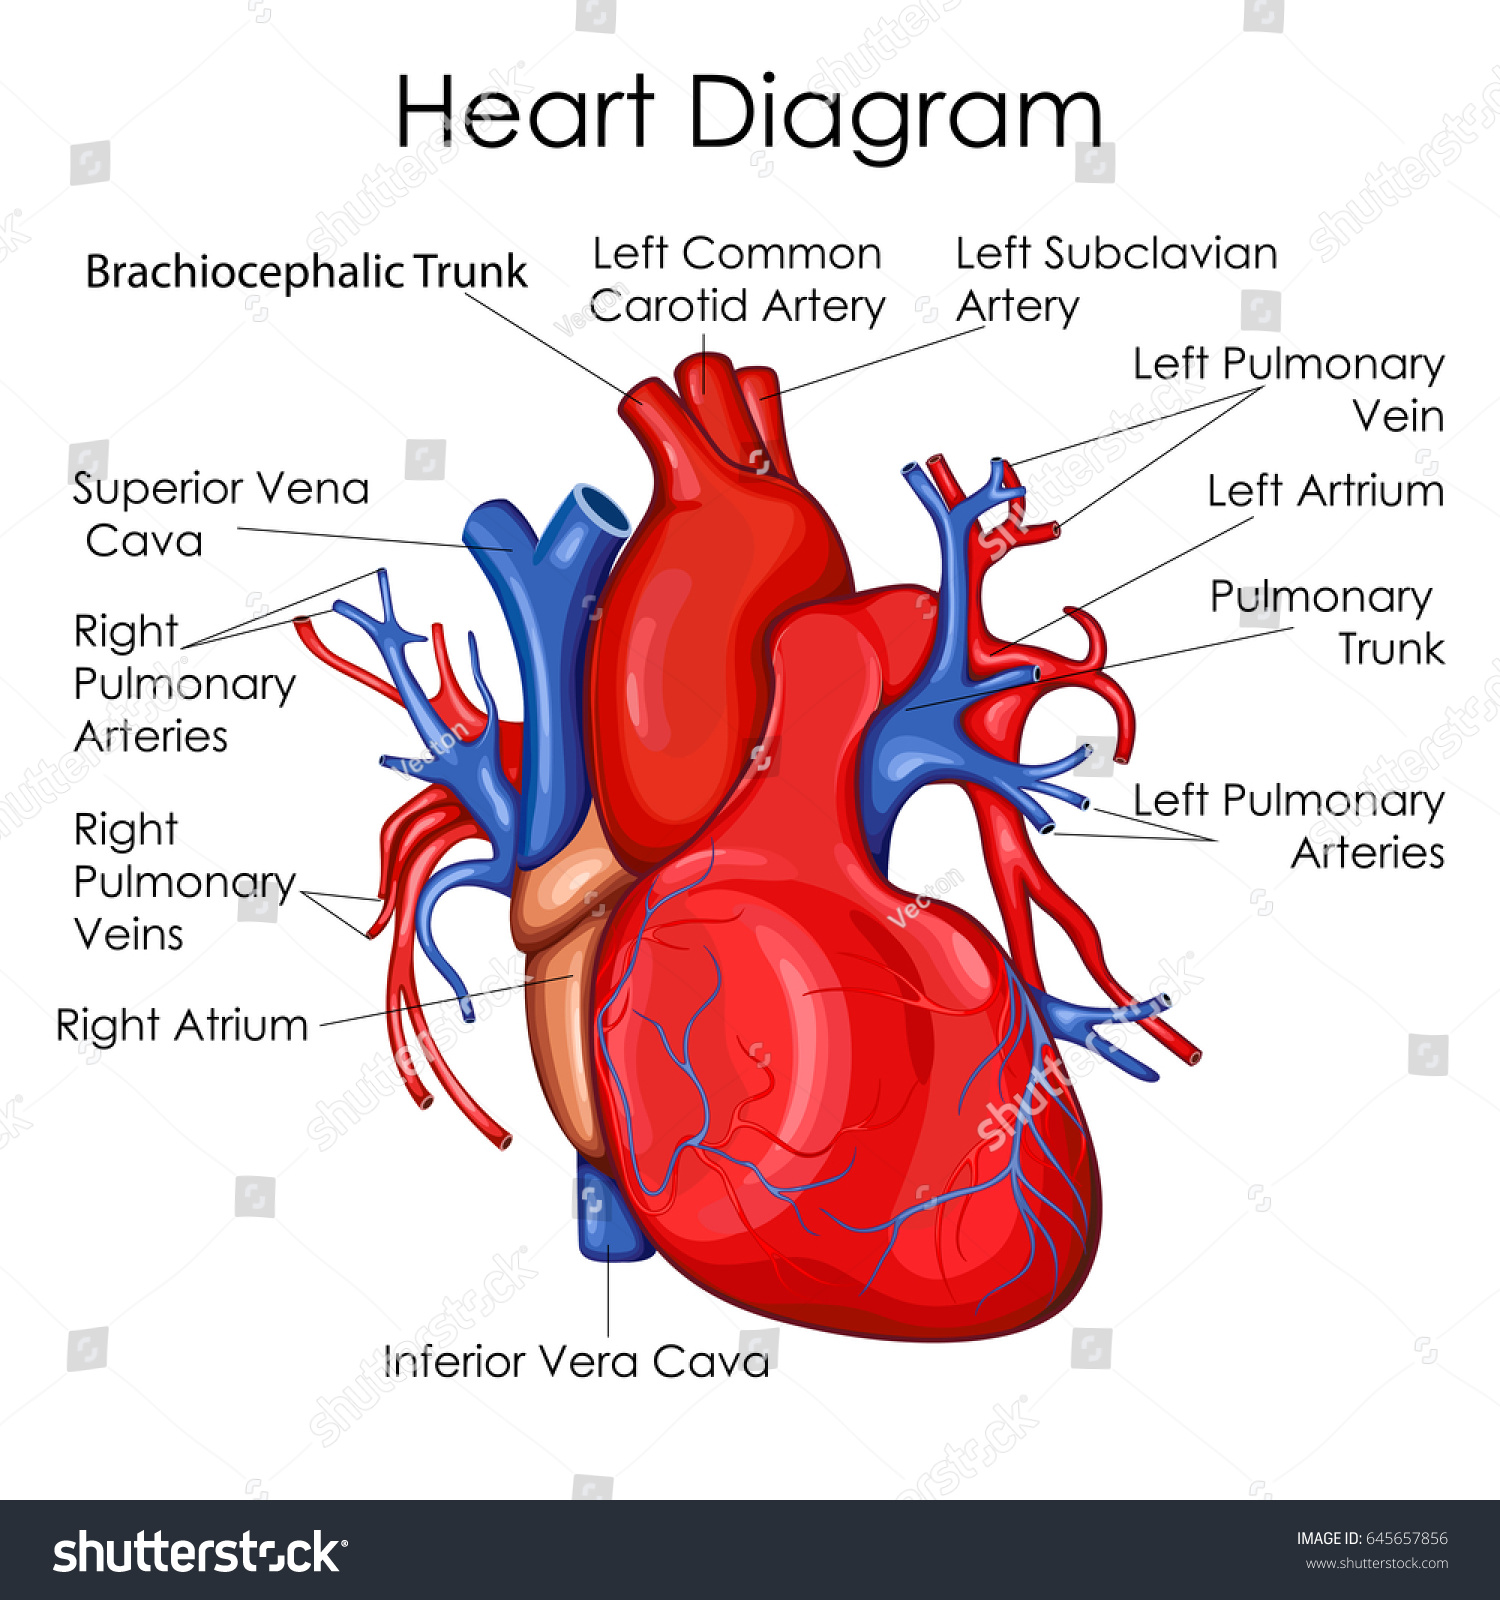 Medical education chart biology heart diagram stock vector medical education chart of biology for heart diagram vector illustration pooptronica